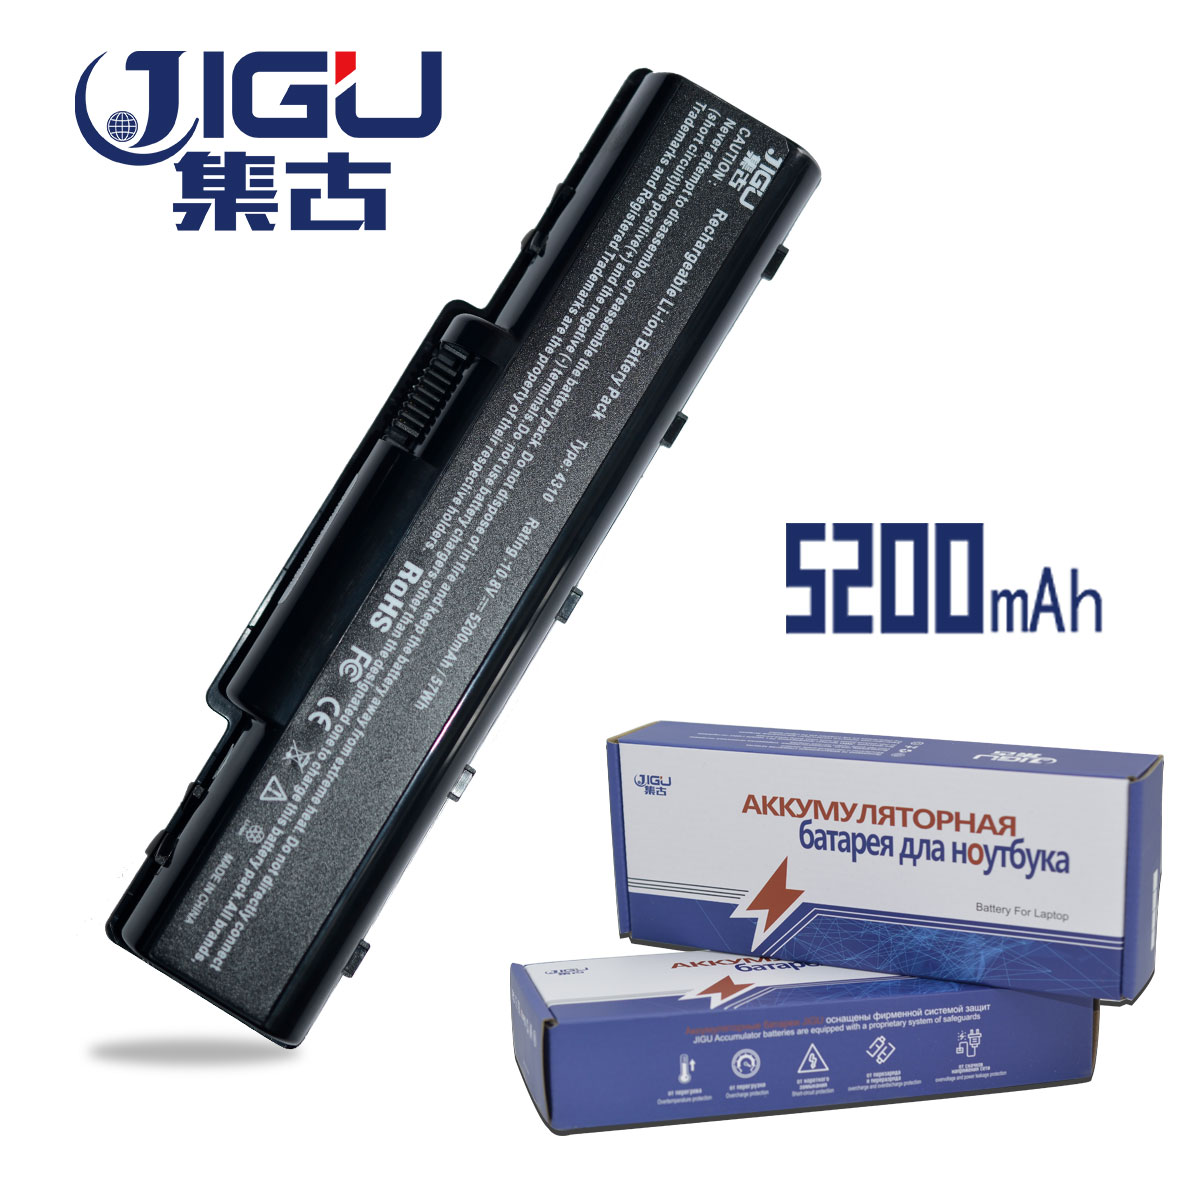 JIGU Laptop Battery For Acer AS07A51 AS07A75 Aspire 5738 5738G 5738Z 5738ZG AS5740 2930 4310 4520 4530 4710 4720 4730 4920 5740 10 8v 11 1v 12 cell laptop battery pack for acer aspire 5340 5542 5738z 5740 as5740 as5542 as07a75